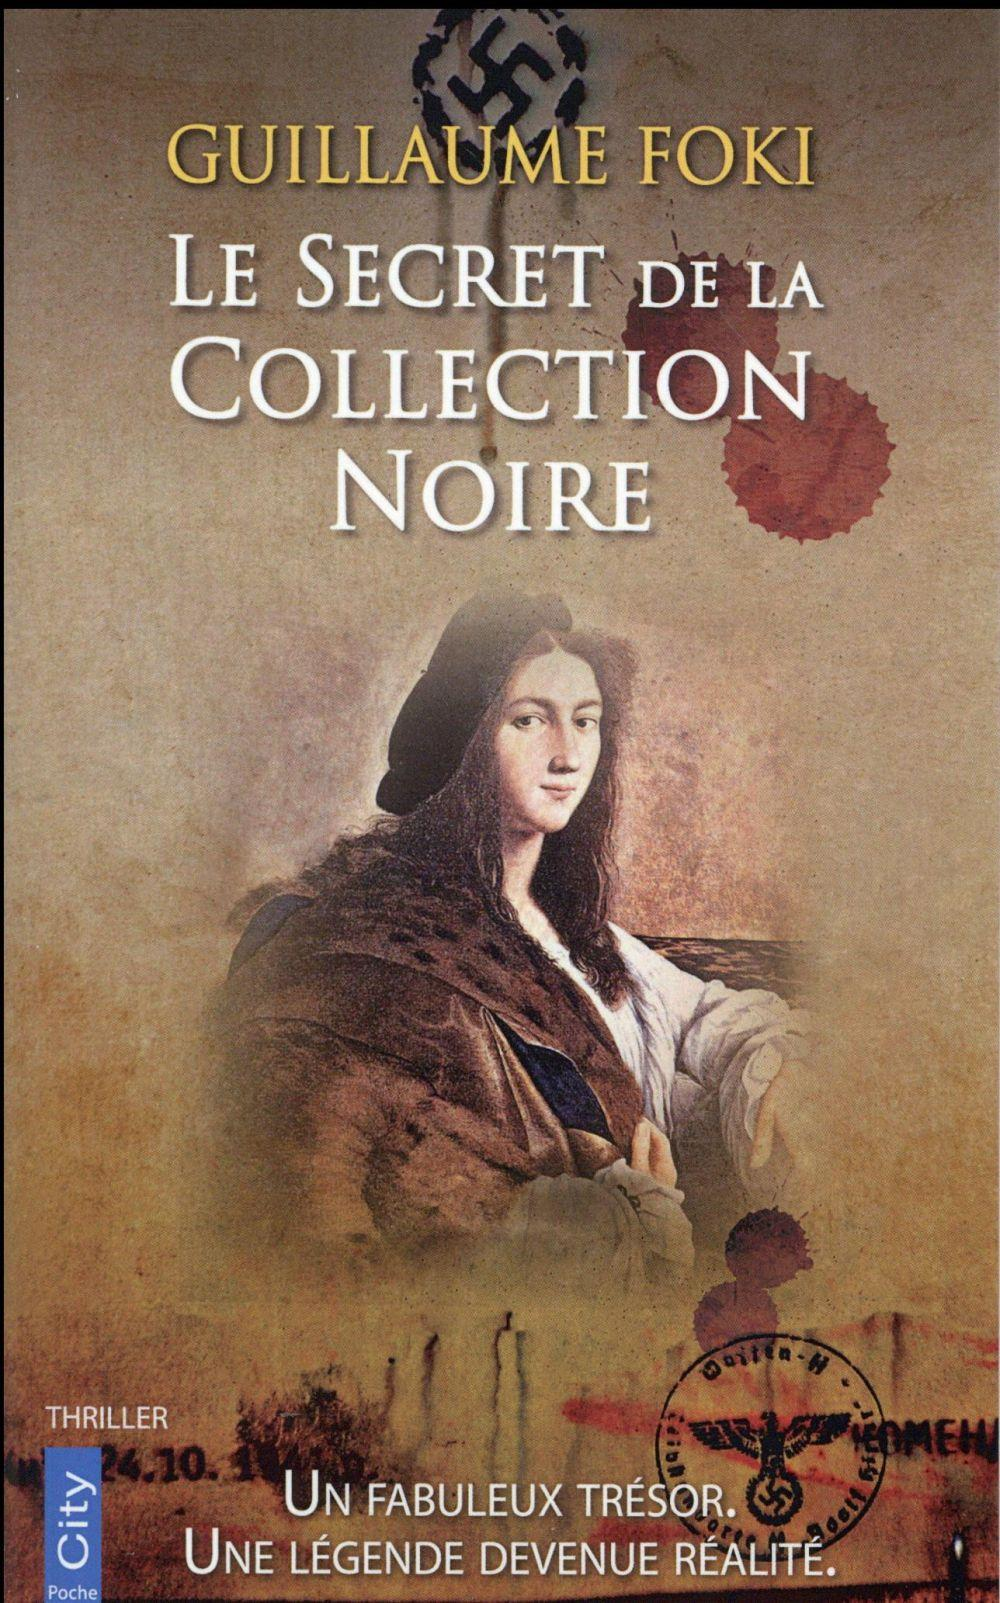 La collection noire  - Guillaume Foki